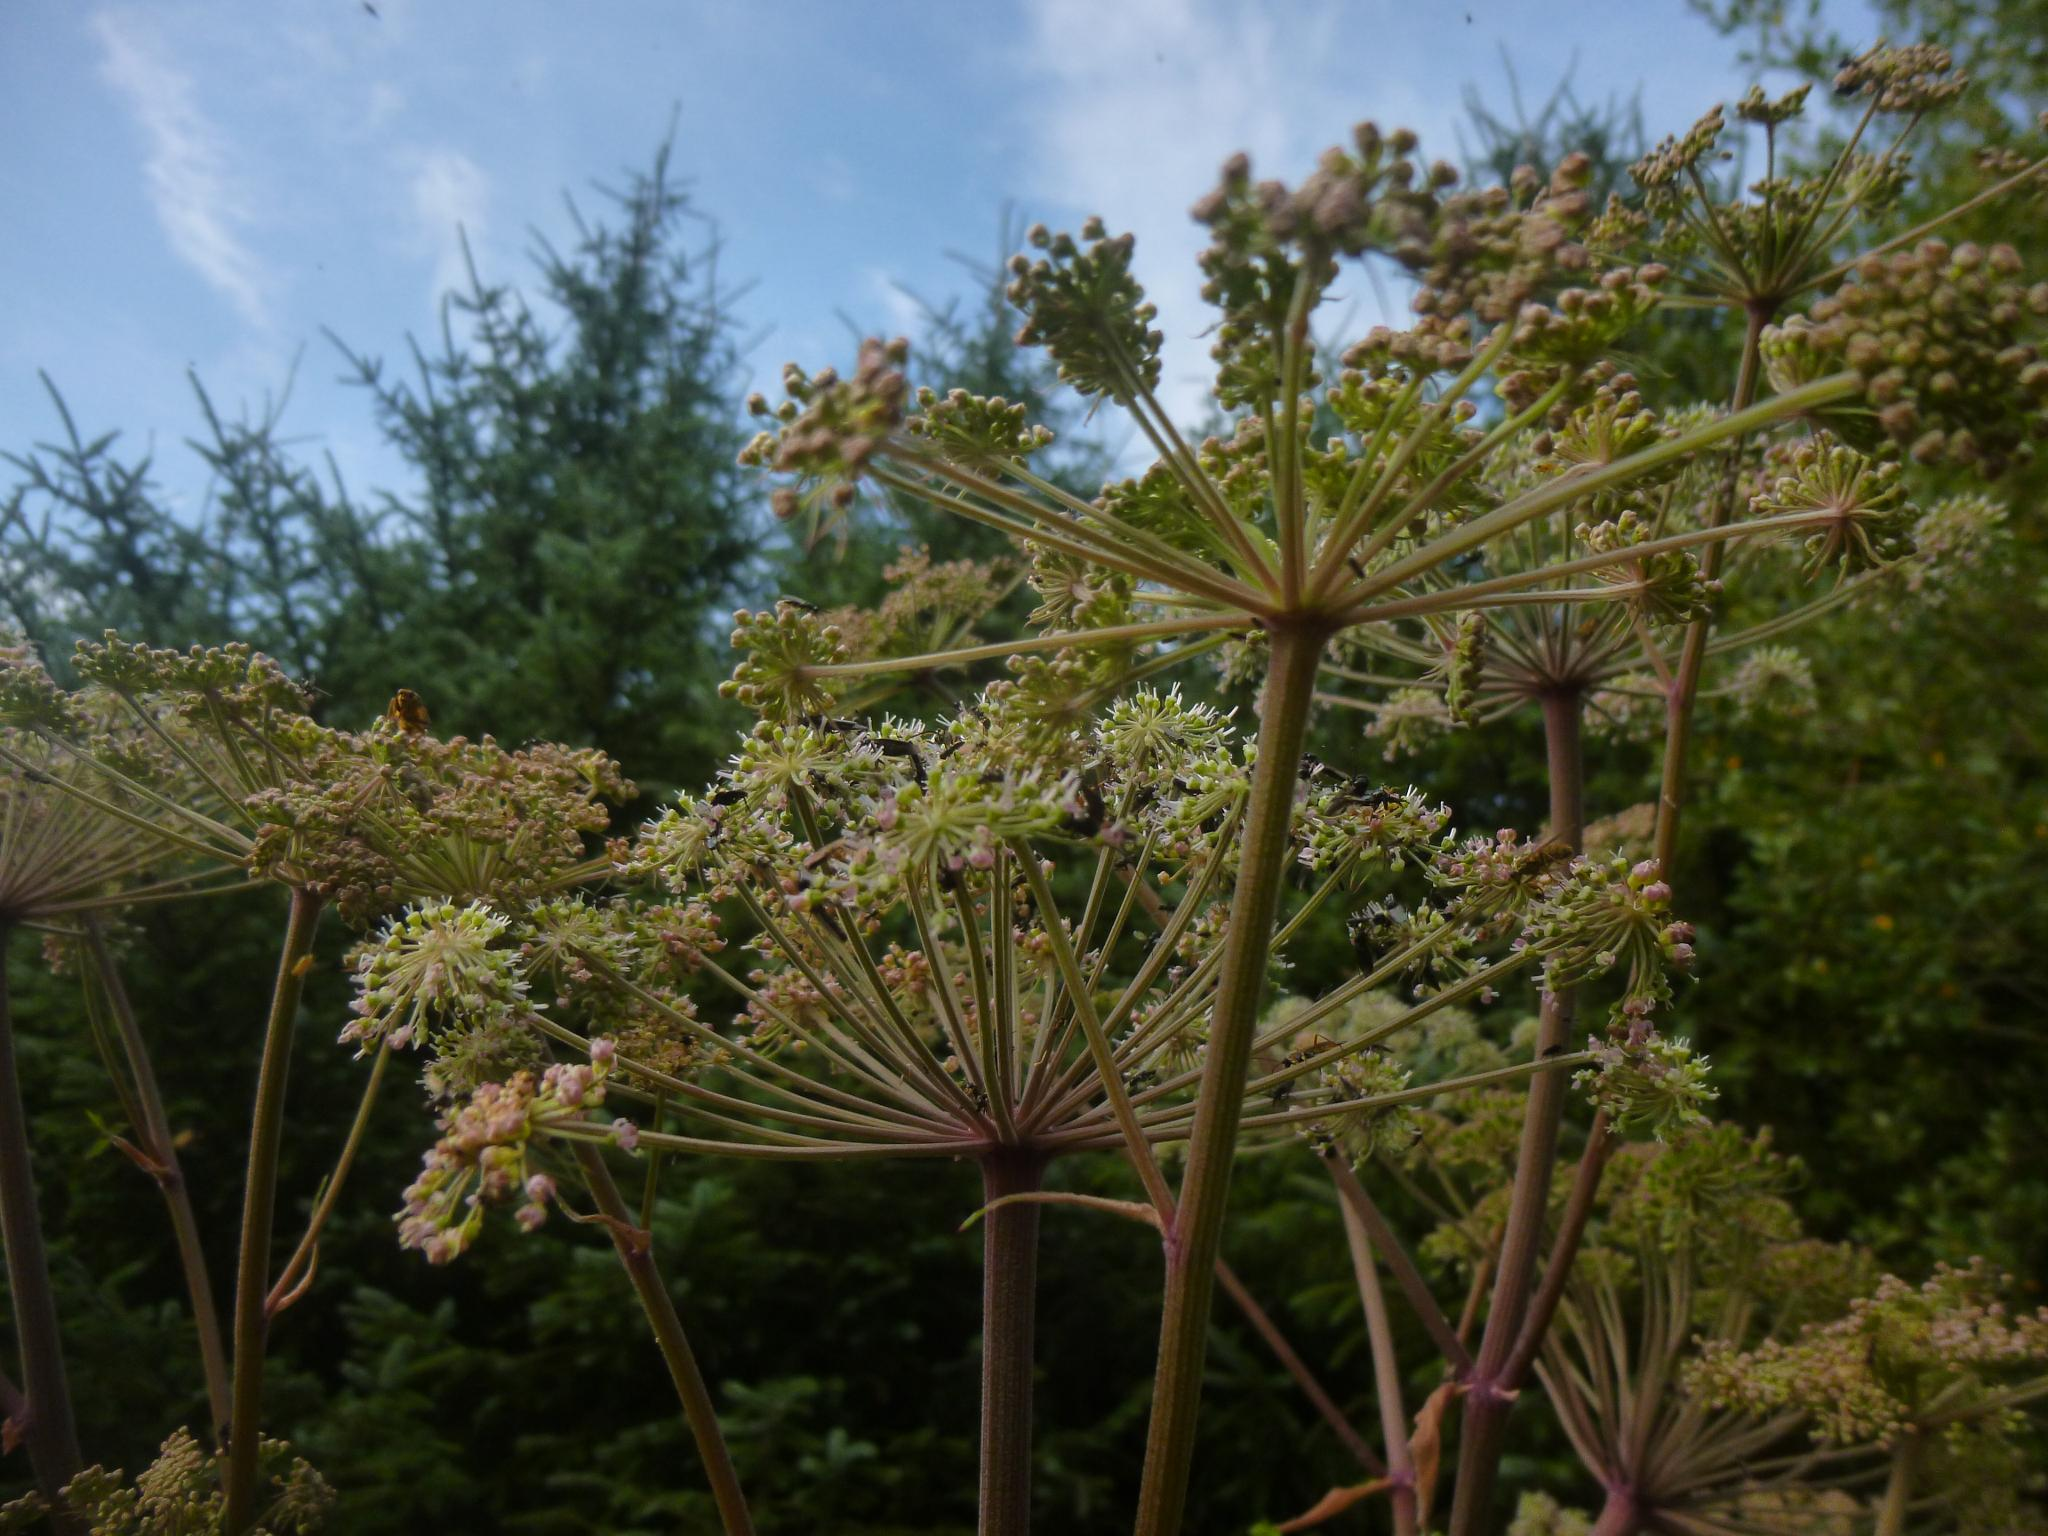 hogweed by chris.adams.3557